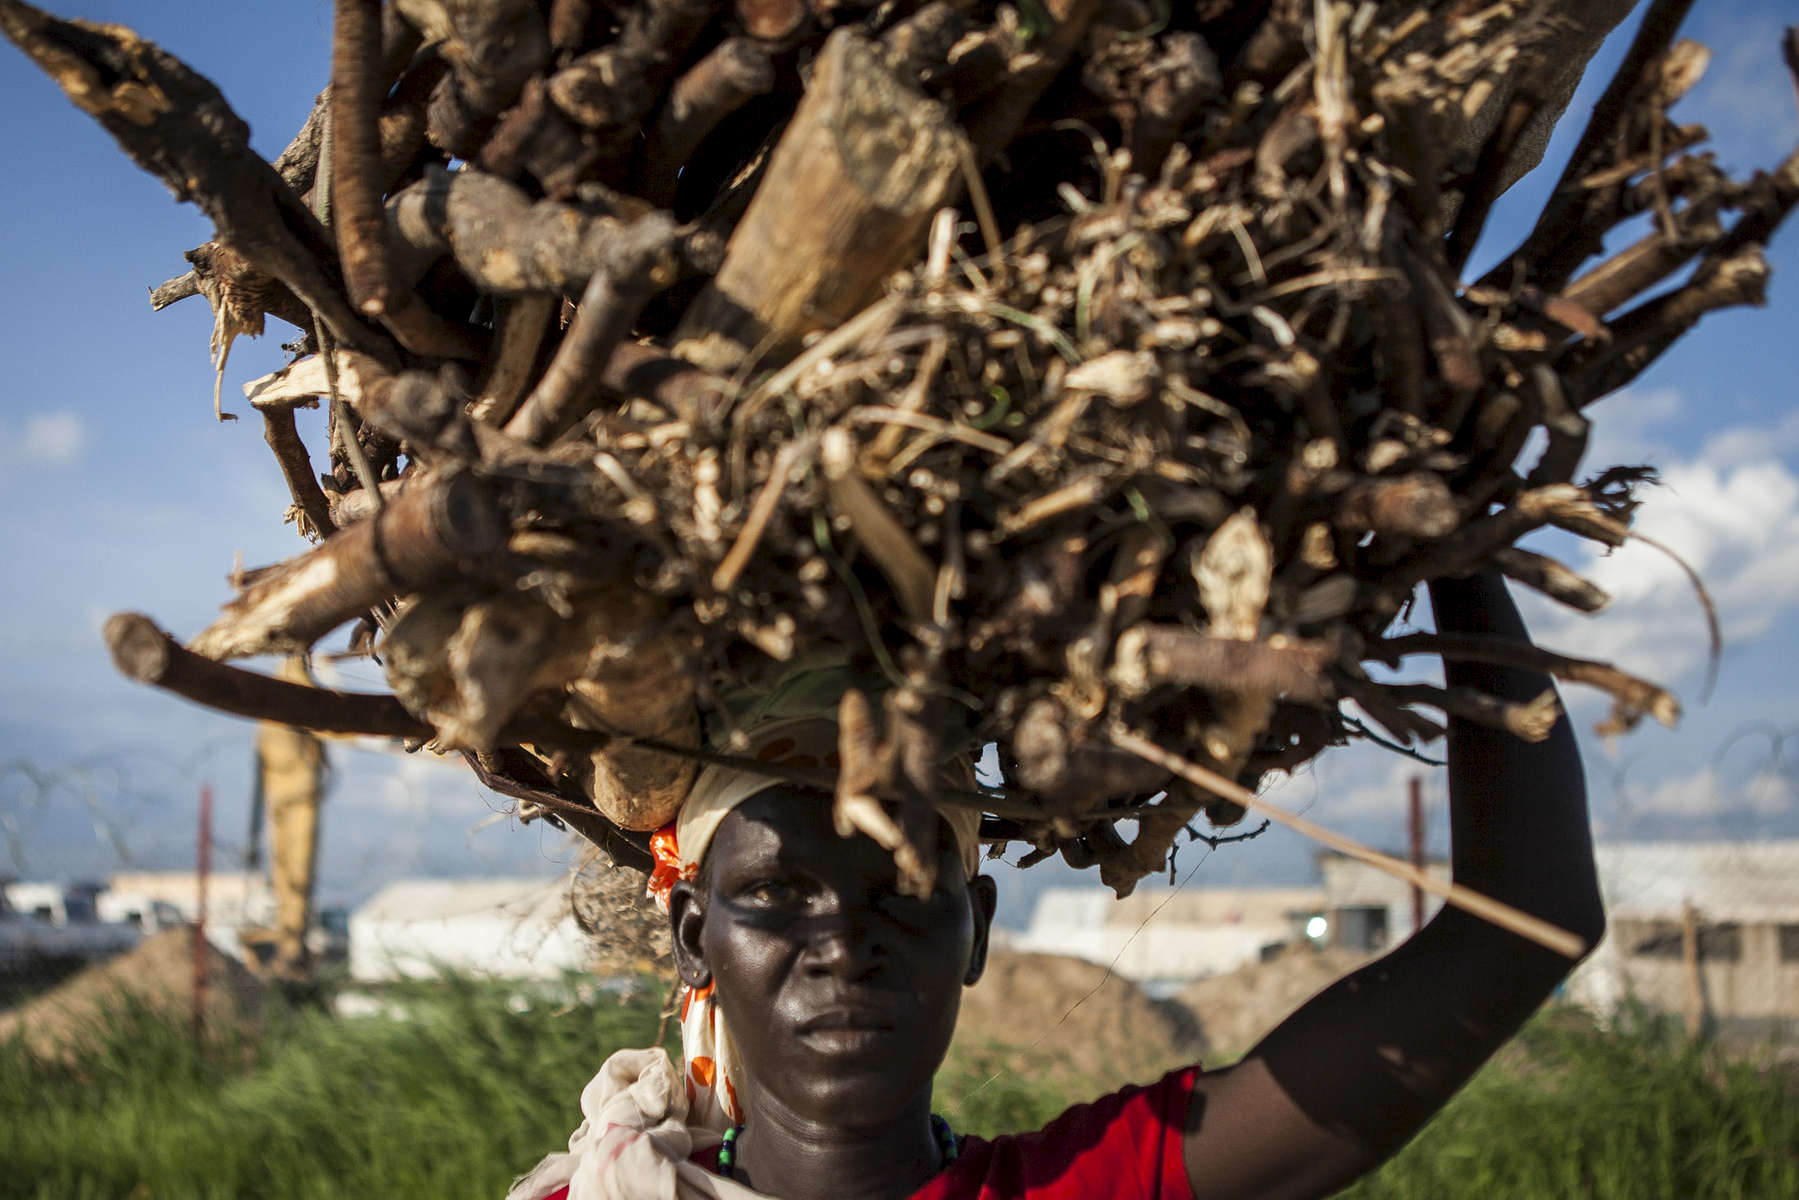 A woman carries firewood she collected outside the Protection of Civilians (POC) site at the United Nations Mission in South Sudan (UNMISS) in Malakal, South Sudan on Friday, July 8, 2016. Most women from the site gather firewood and sell goods outside of the compound as men fear tribal violence outside the protection of the UNMISS walls. Women still endure much harassment and attacks at the hands of the Dinka tribe members and the SPLA. The Malakal POC site houses over 32,000 displaced people mainly from the Shilluk and Nuer tribes. In February of this year, members of the Dinka tribe, who resided in the camp at the time, carried out a coordinated attack within the site leading to the destruction of hundreds of shelters and many deaths. Since then, most members of the Dinka tribe have fled to Malakal town where they occupy the homes of those still displaced.